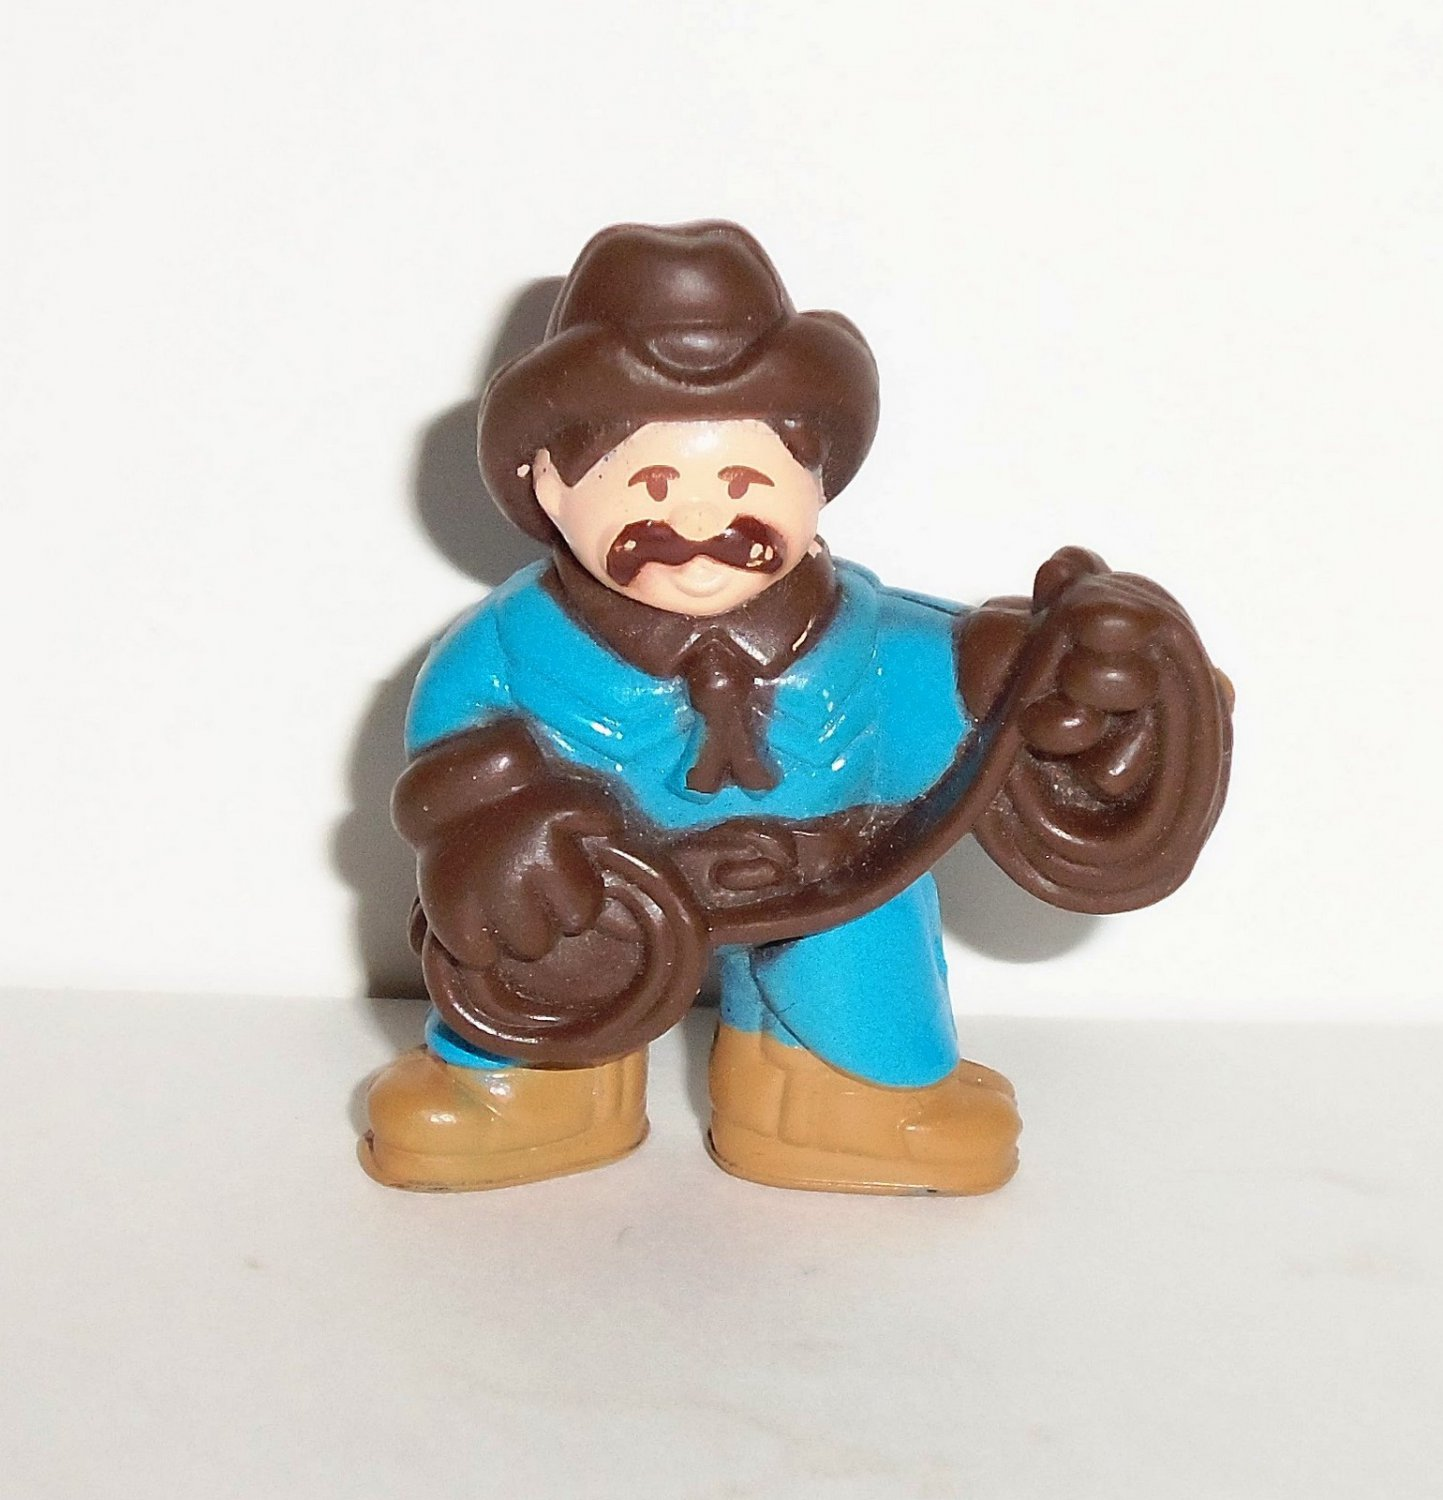 Lincoln Logs Cowboy in Blue Outfit with Rope PVC Figure Loose Used